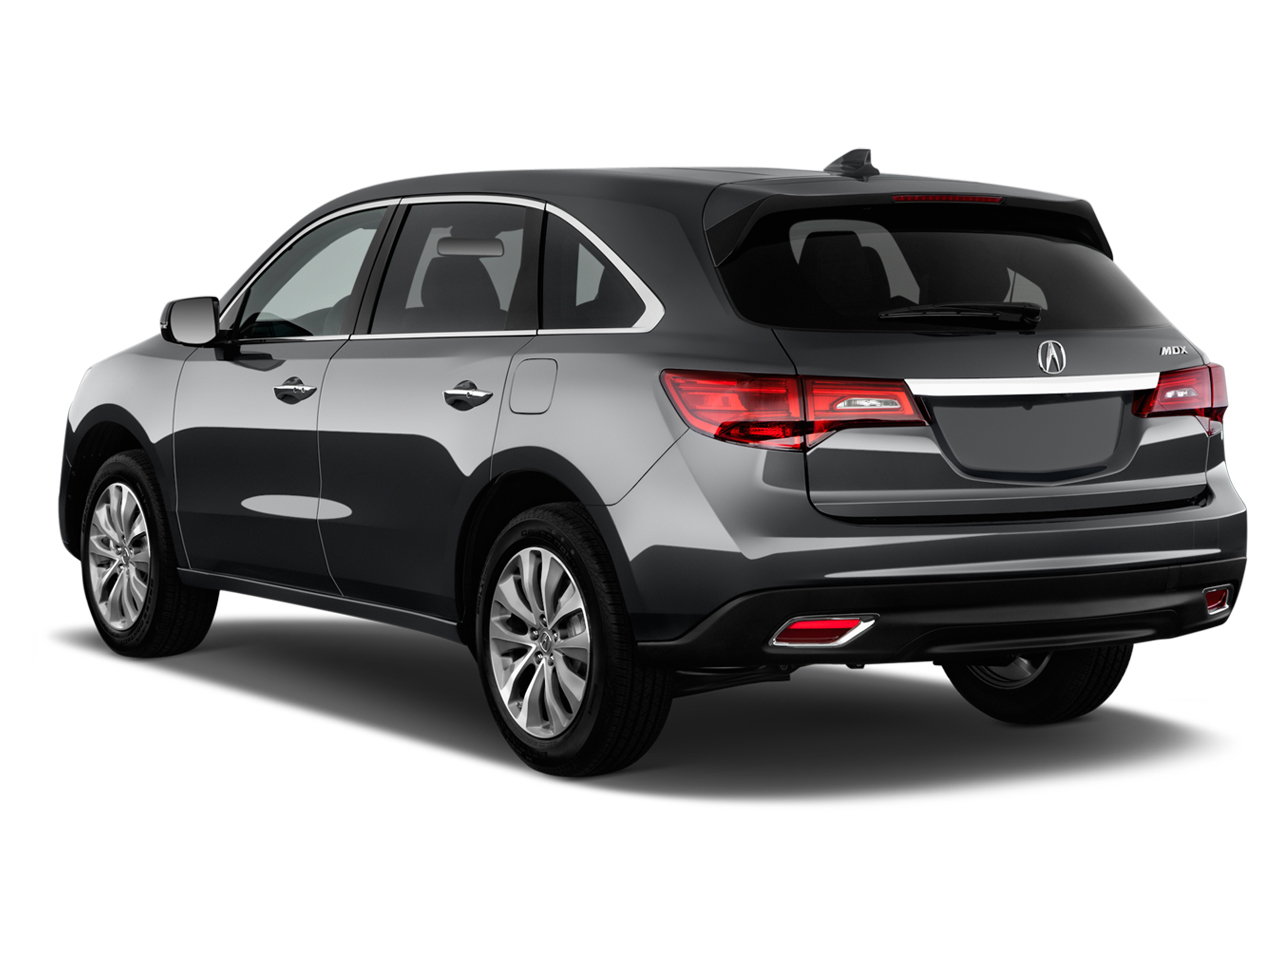 2016 Acura MDX Performance Review - The Car Connection